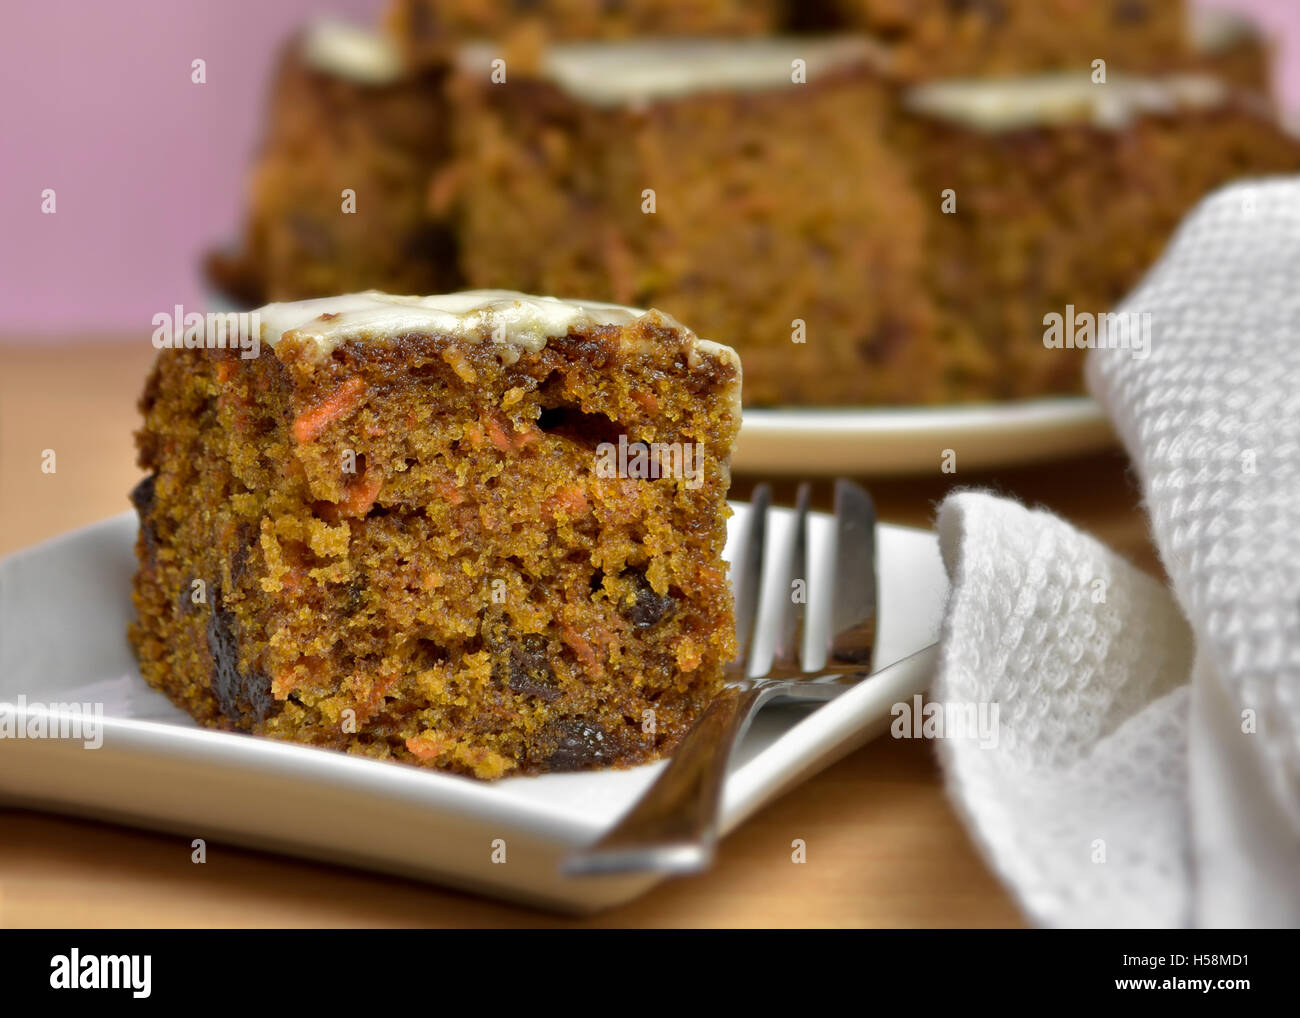 Home made carrot cake close up with out of focus cake in background - Stock Image